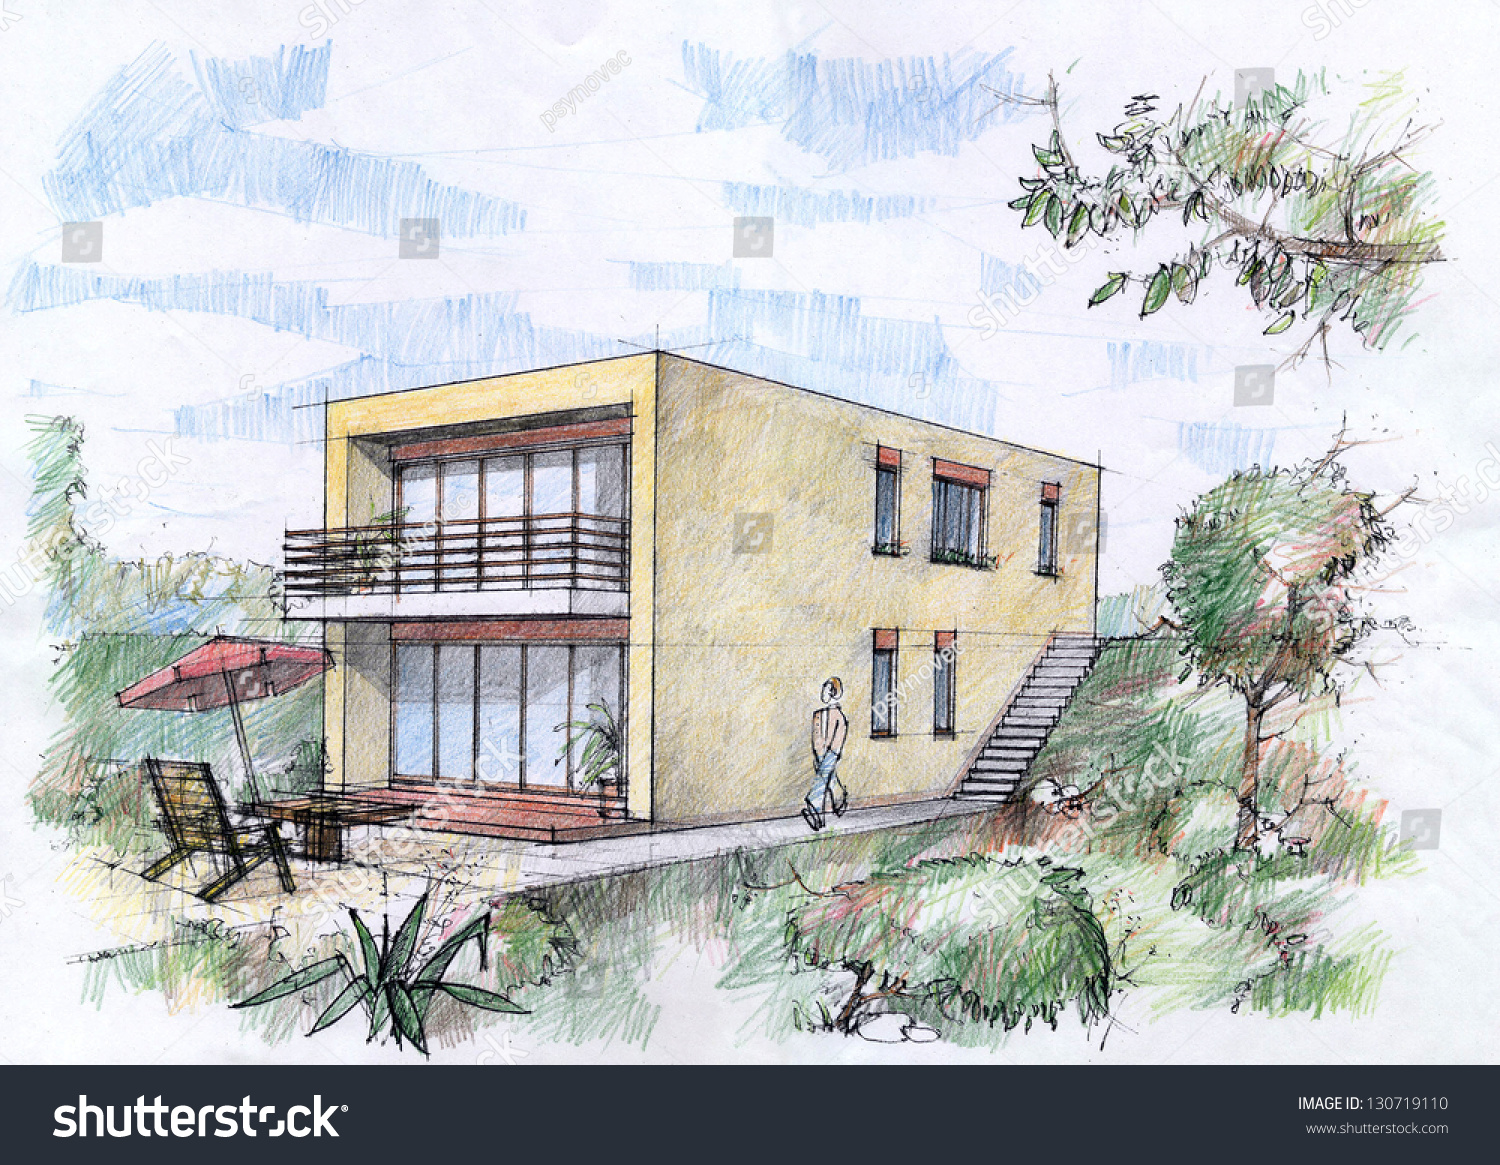 Modern House Sketch By Pencils. Stock Photo 130719110 : Shutterstock - ^